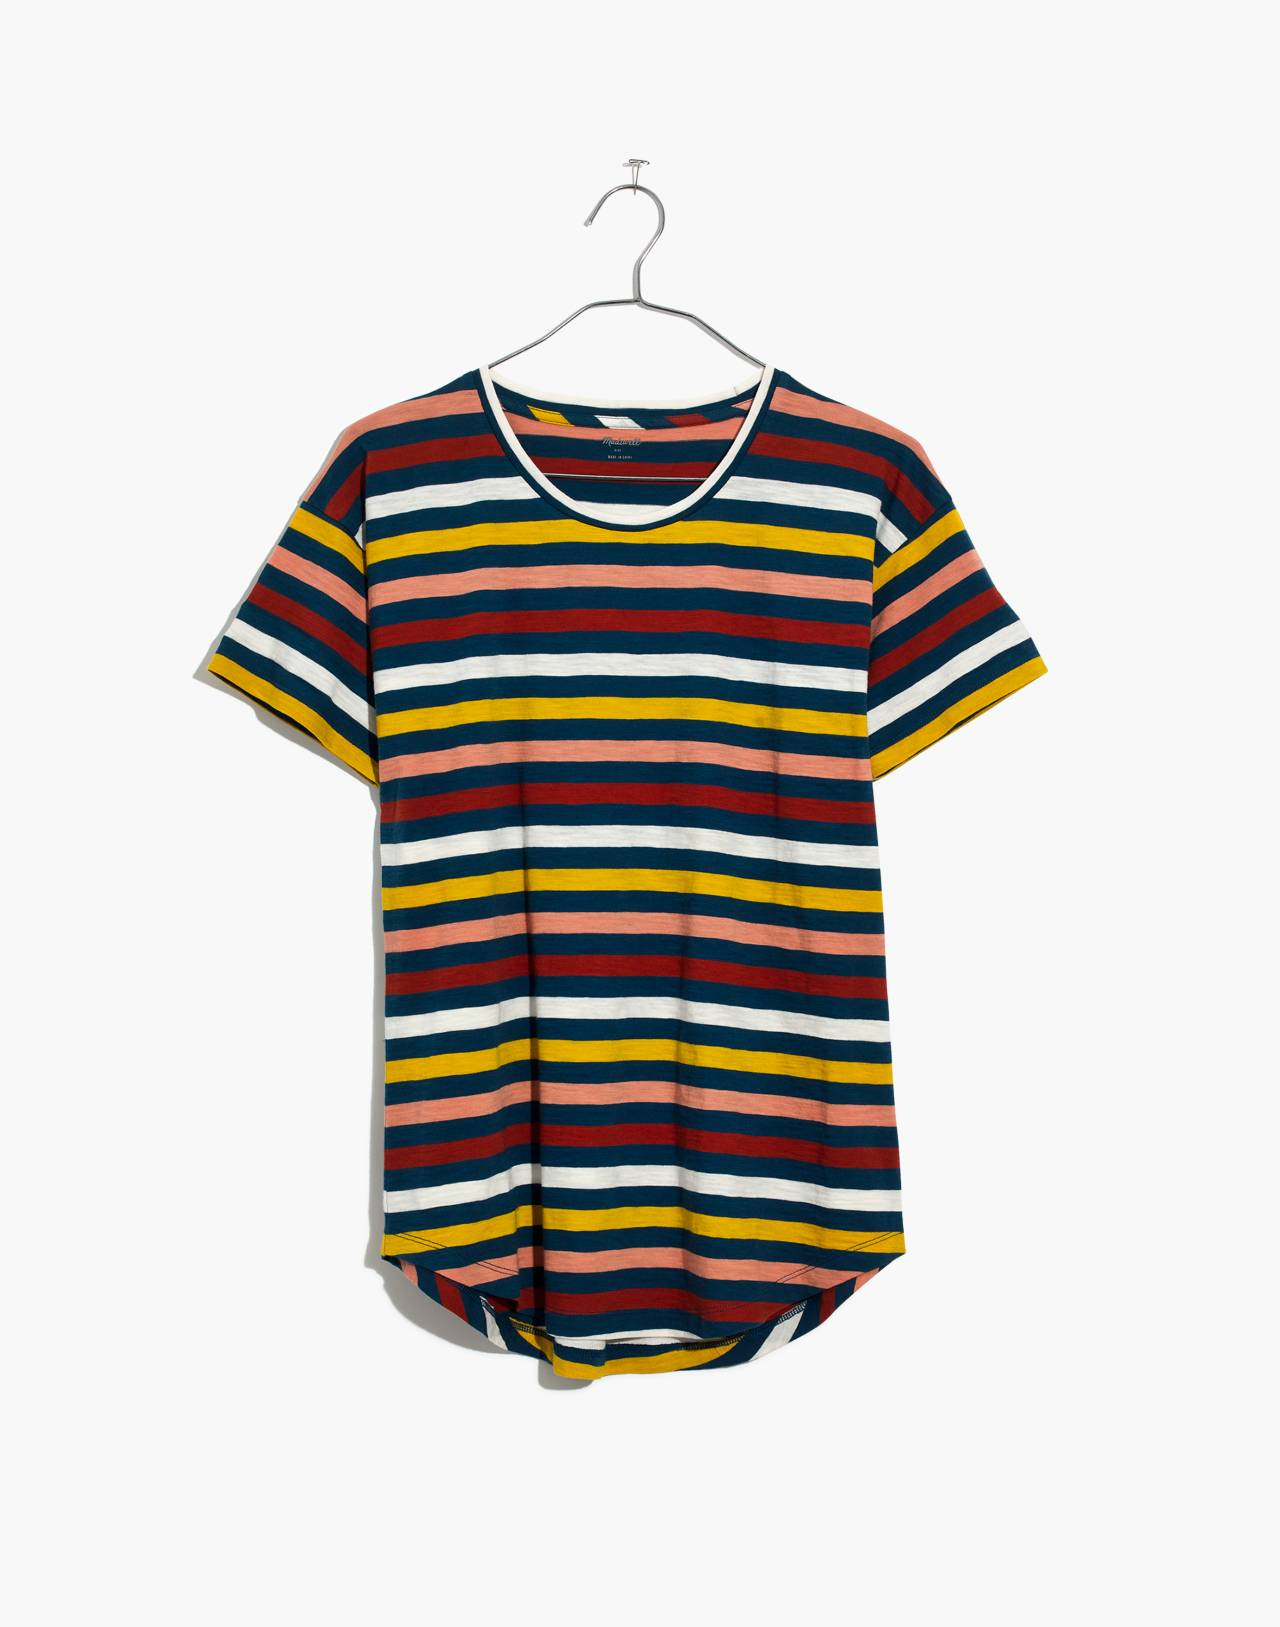 Whisper Cotton Crewneck Tee in Lennie Stripe in blue hematite image 4